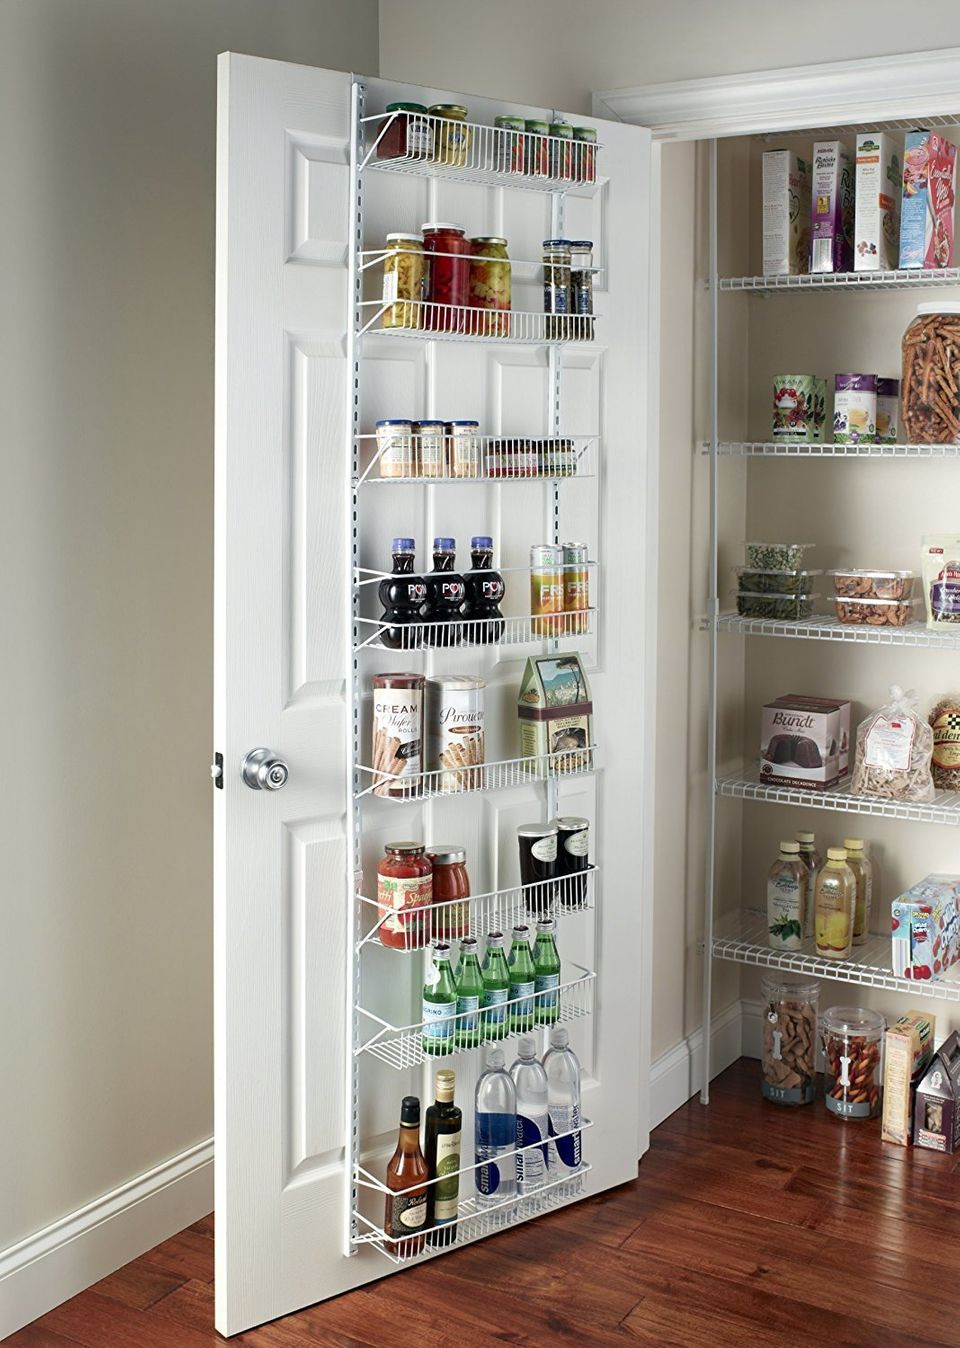 spice storage ideas for small spaces n 5ac e4b0aacd15b7d364